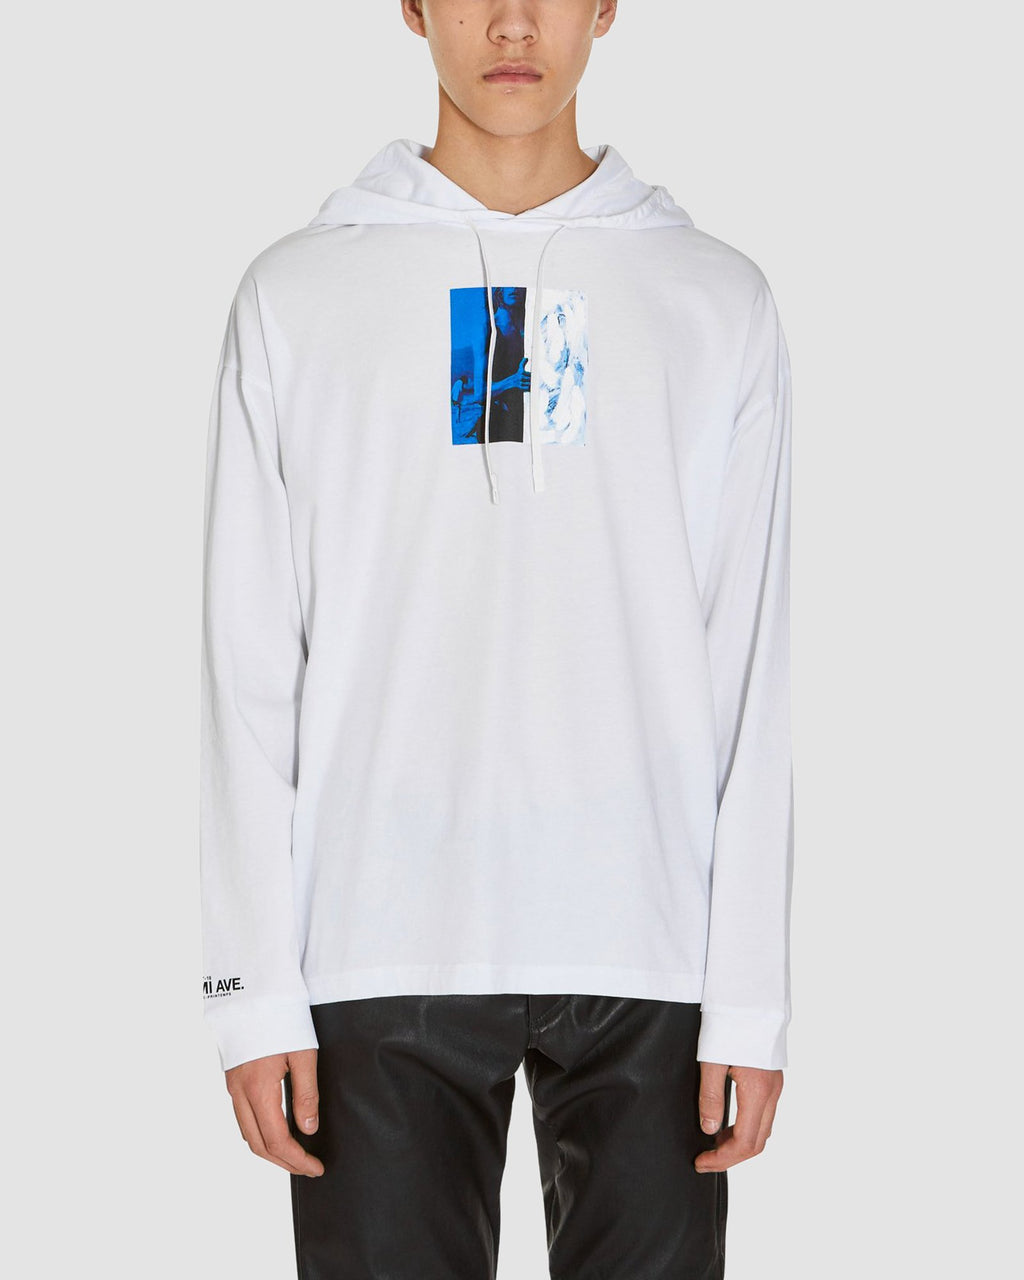 VENICE BEACH HOODED LS TEE